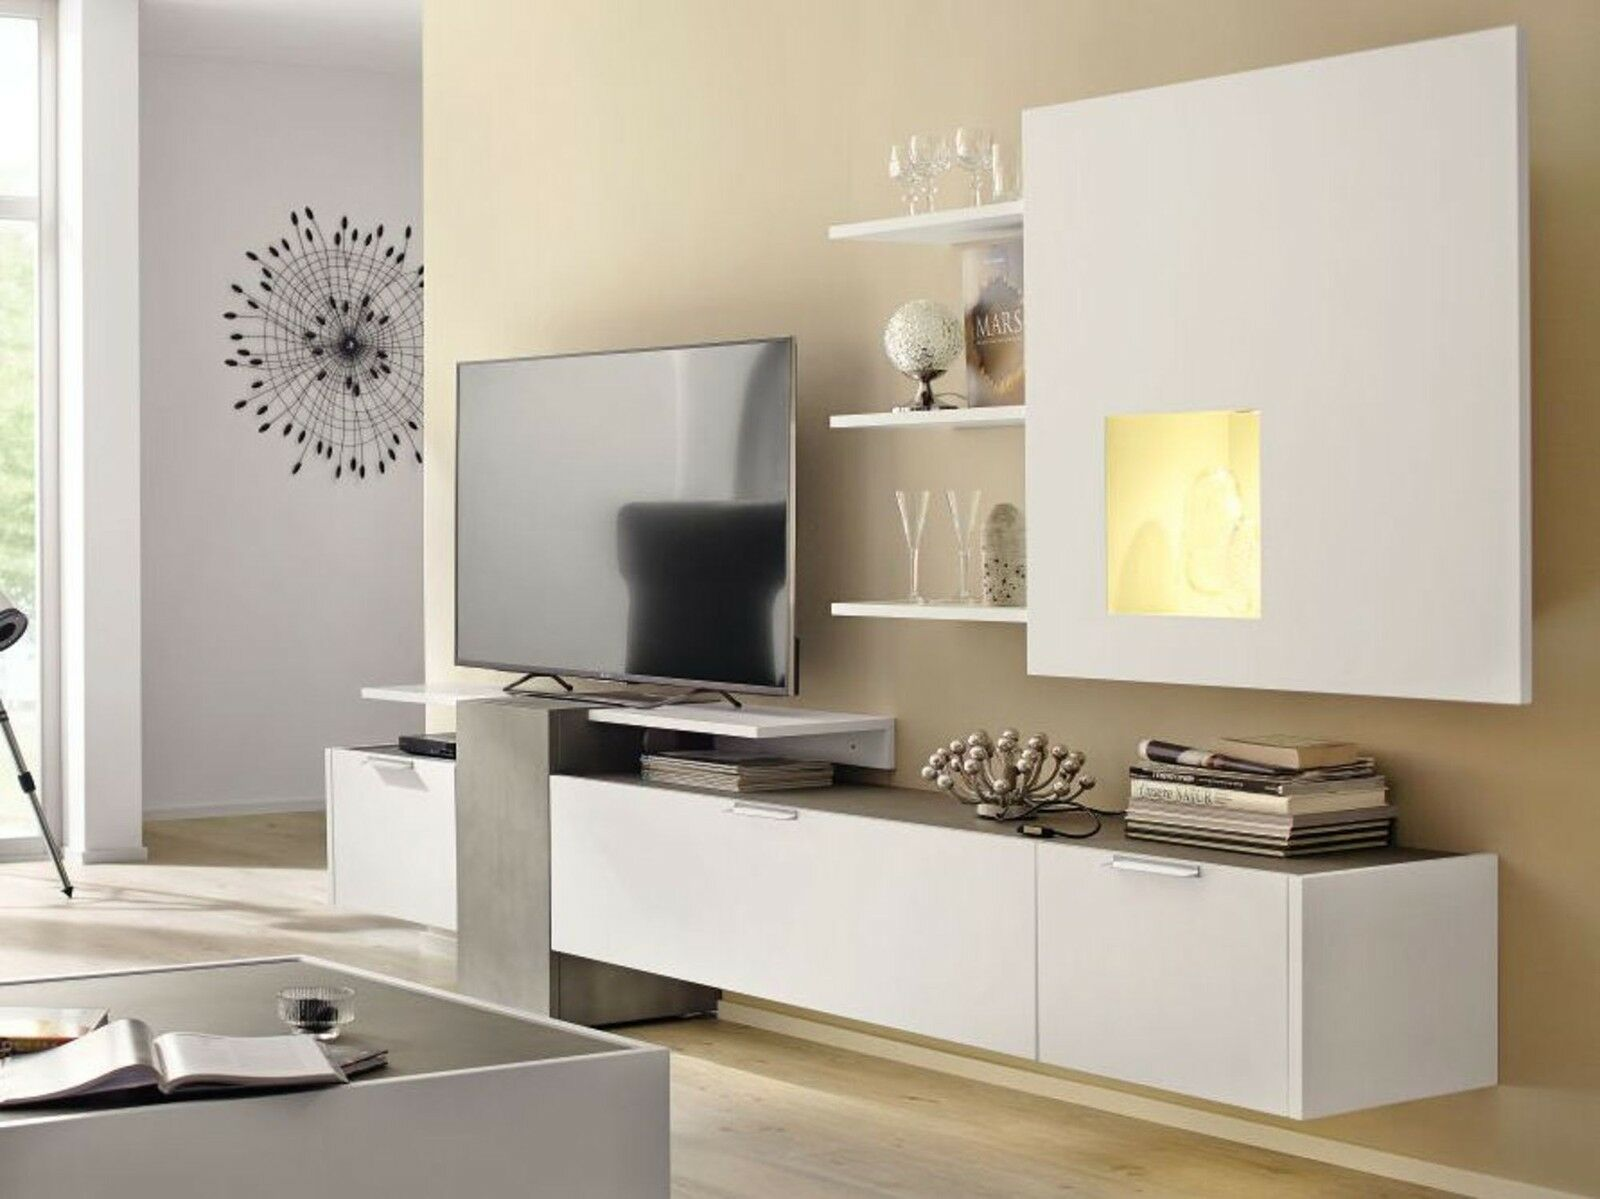 schrankwand wohnzimmer hlsta fabulous schrankwand wohnzimmer hulsta tv selber bauen mit fur. Black Bedroom Furniture Sets. Home Design Ideas